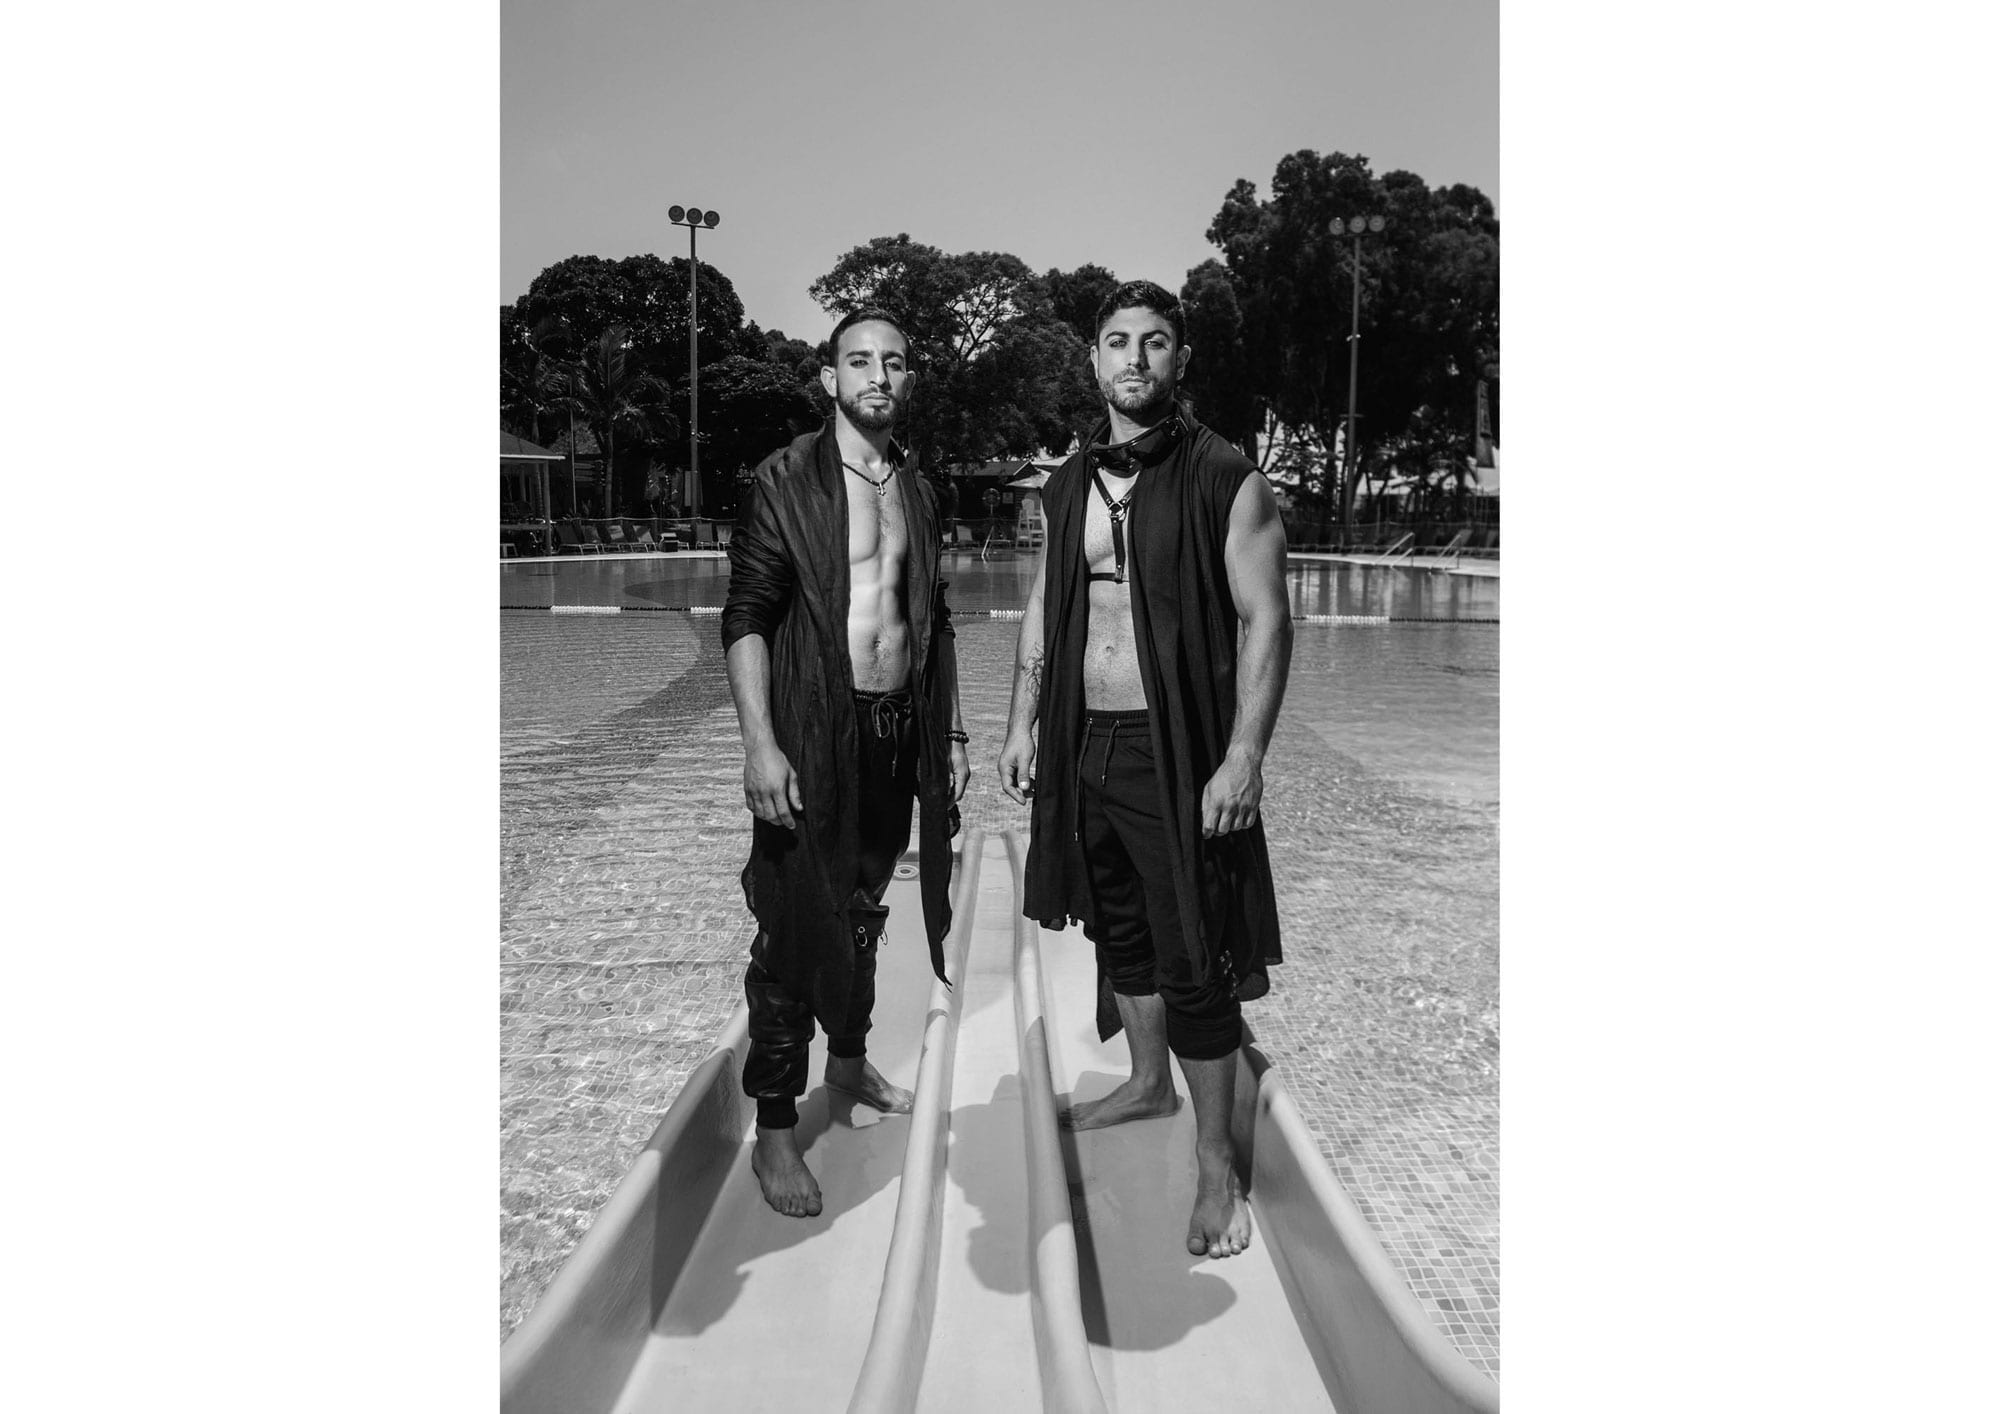 Photography: Segev Orlev Styling: Mauricio Arcillo, Fashion: Aarketa, Makeup Artist: Orna Rimok, Hair Stylist: Elad Uziel, Hair & Makeup: lior krispel, Models: Sami Dadon, Yinon Perets, Ldor Bar Or, Yaniv Putterman, Producer: Orna Rviztky for Fashion Israel, Pr: Rotem Lalush11